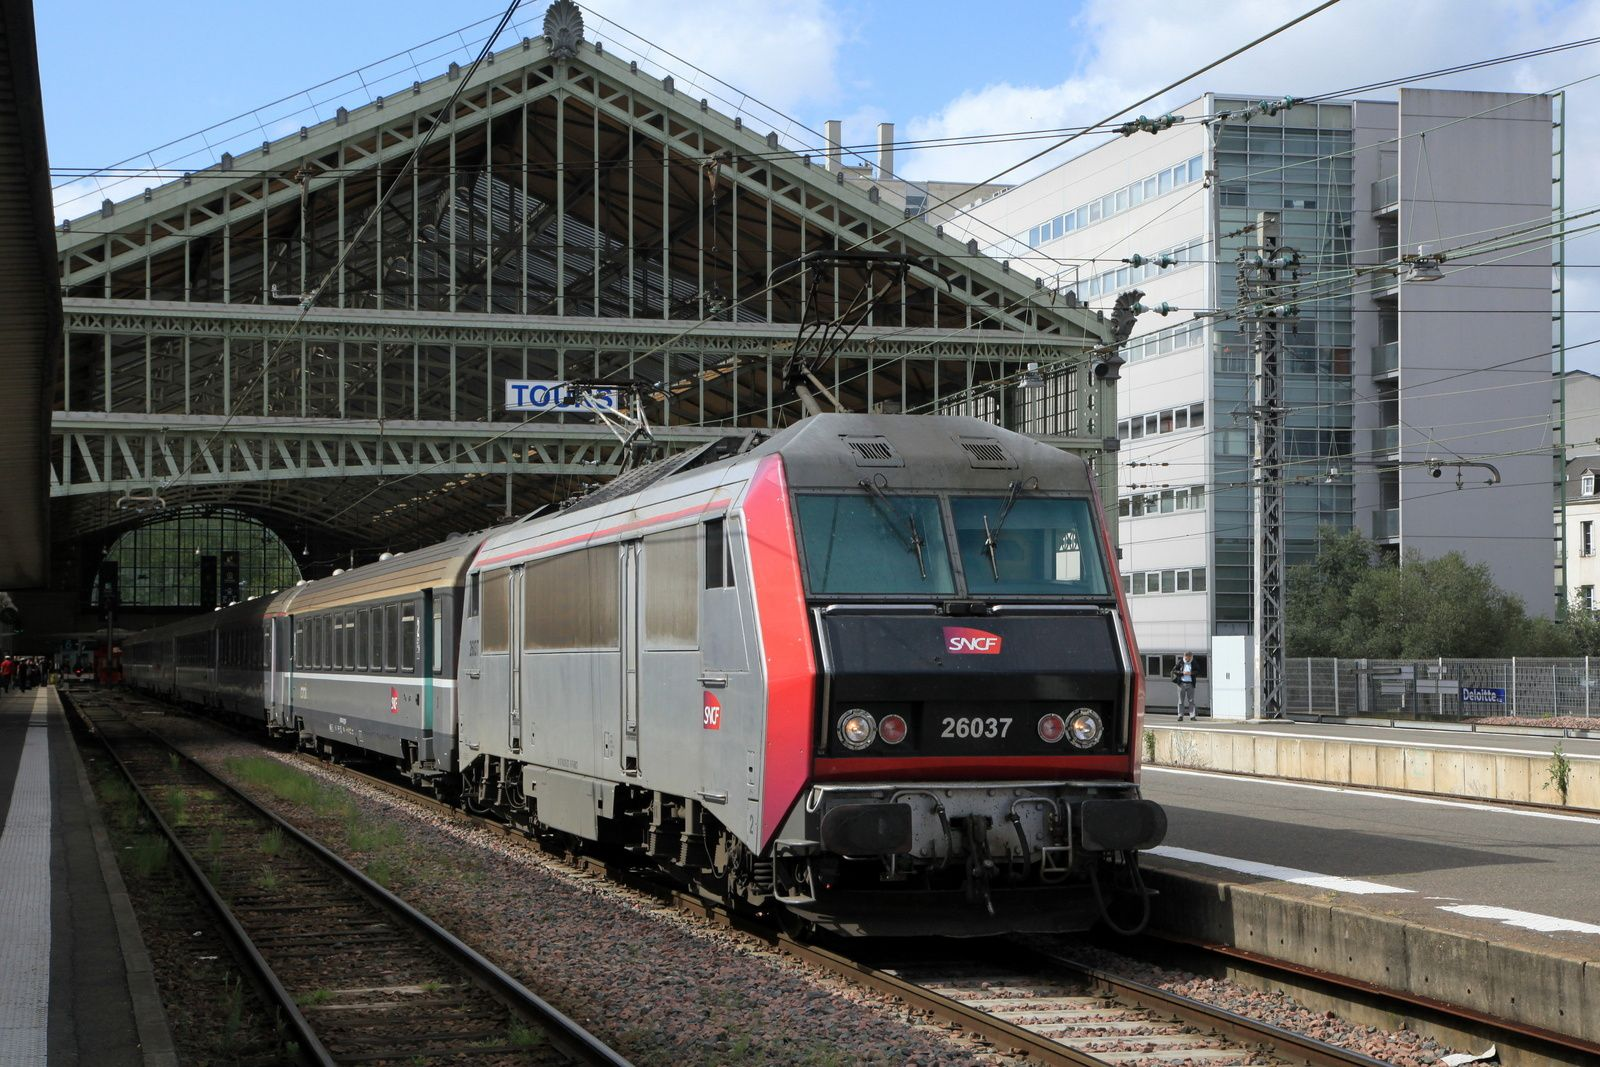 Tours : Intercités n°14072 à destination de Paris avec la BB 26037 (27 avril 2018)